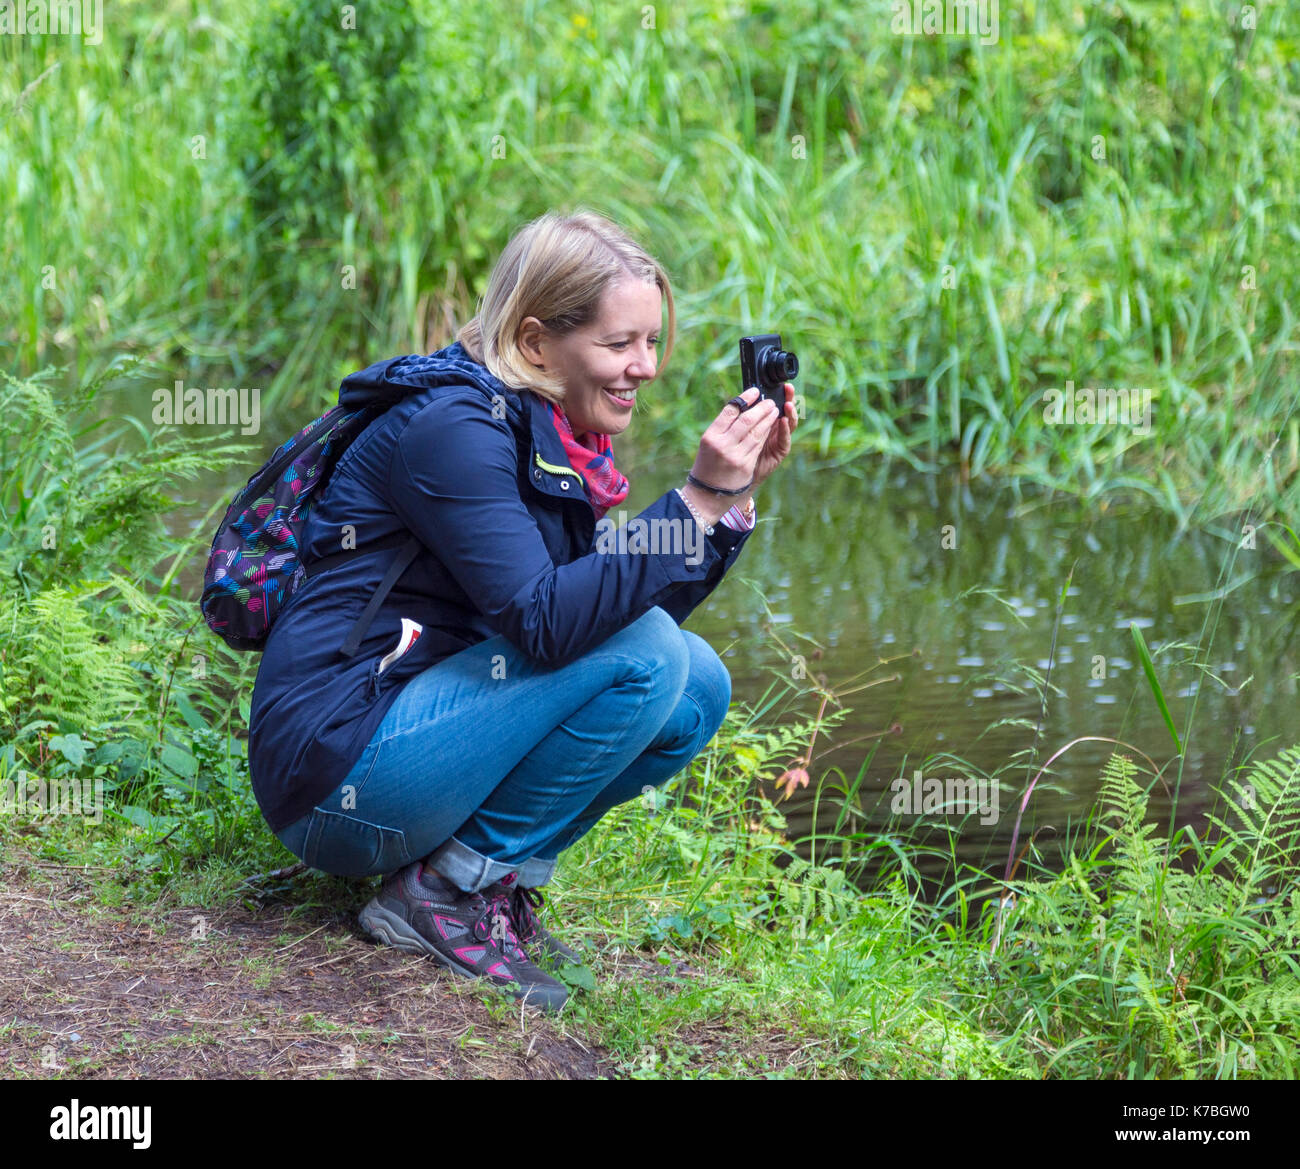 Young woman taking photograph Photo Stock